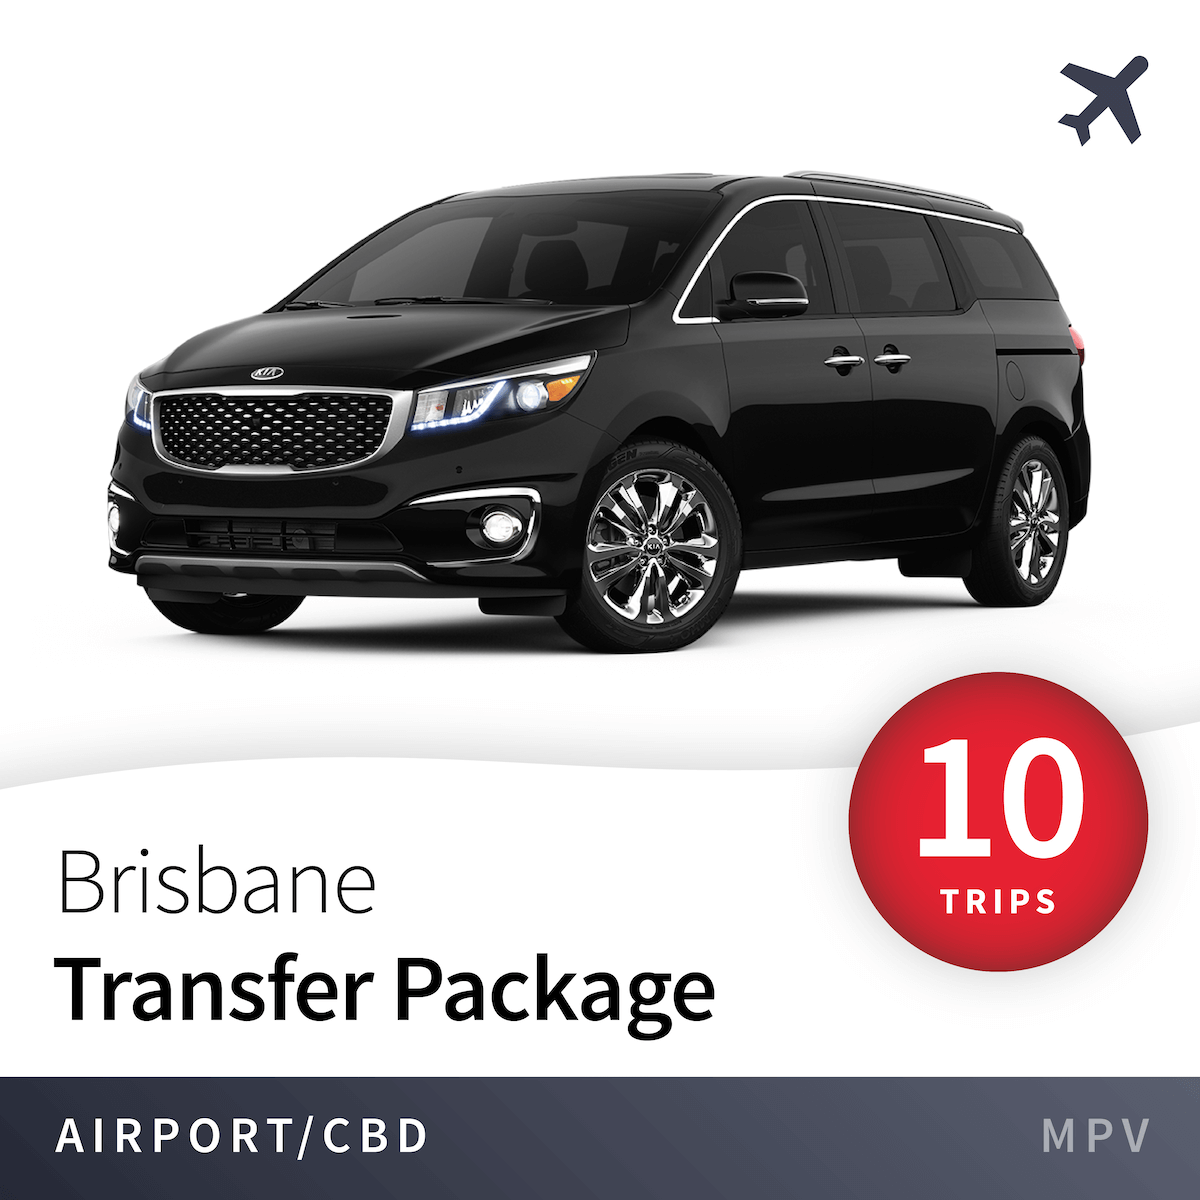 Brisbane Airport Transfer Package - MPV (10 Trips) 8